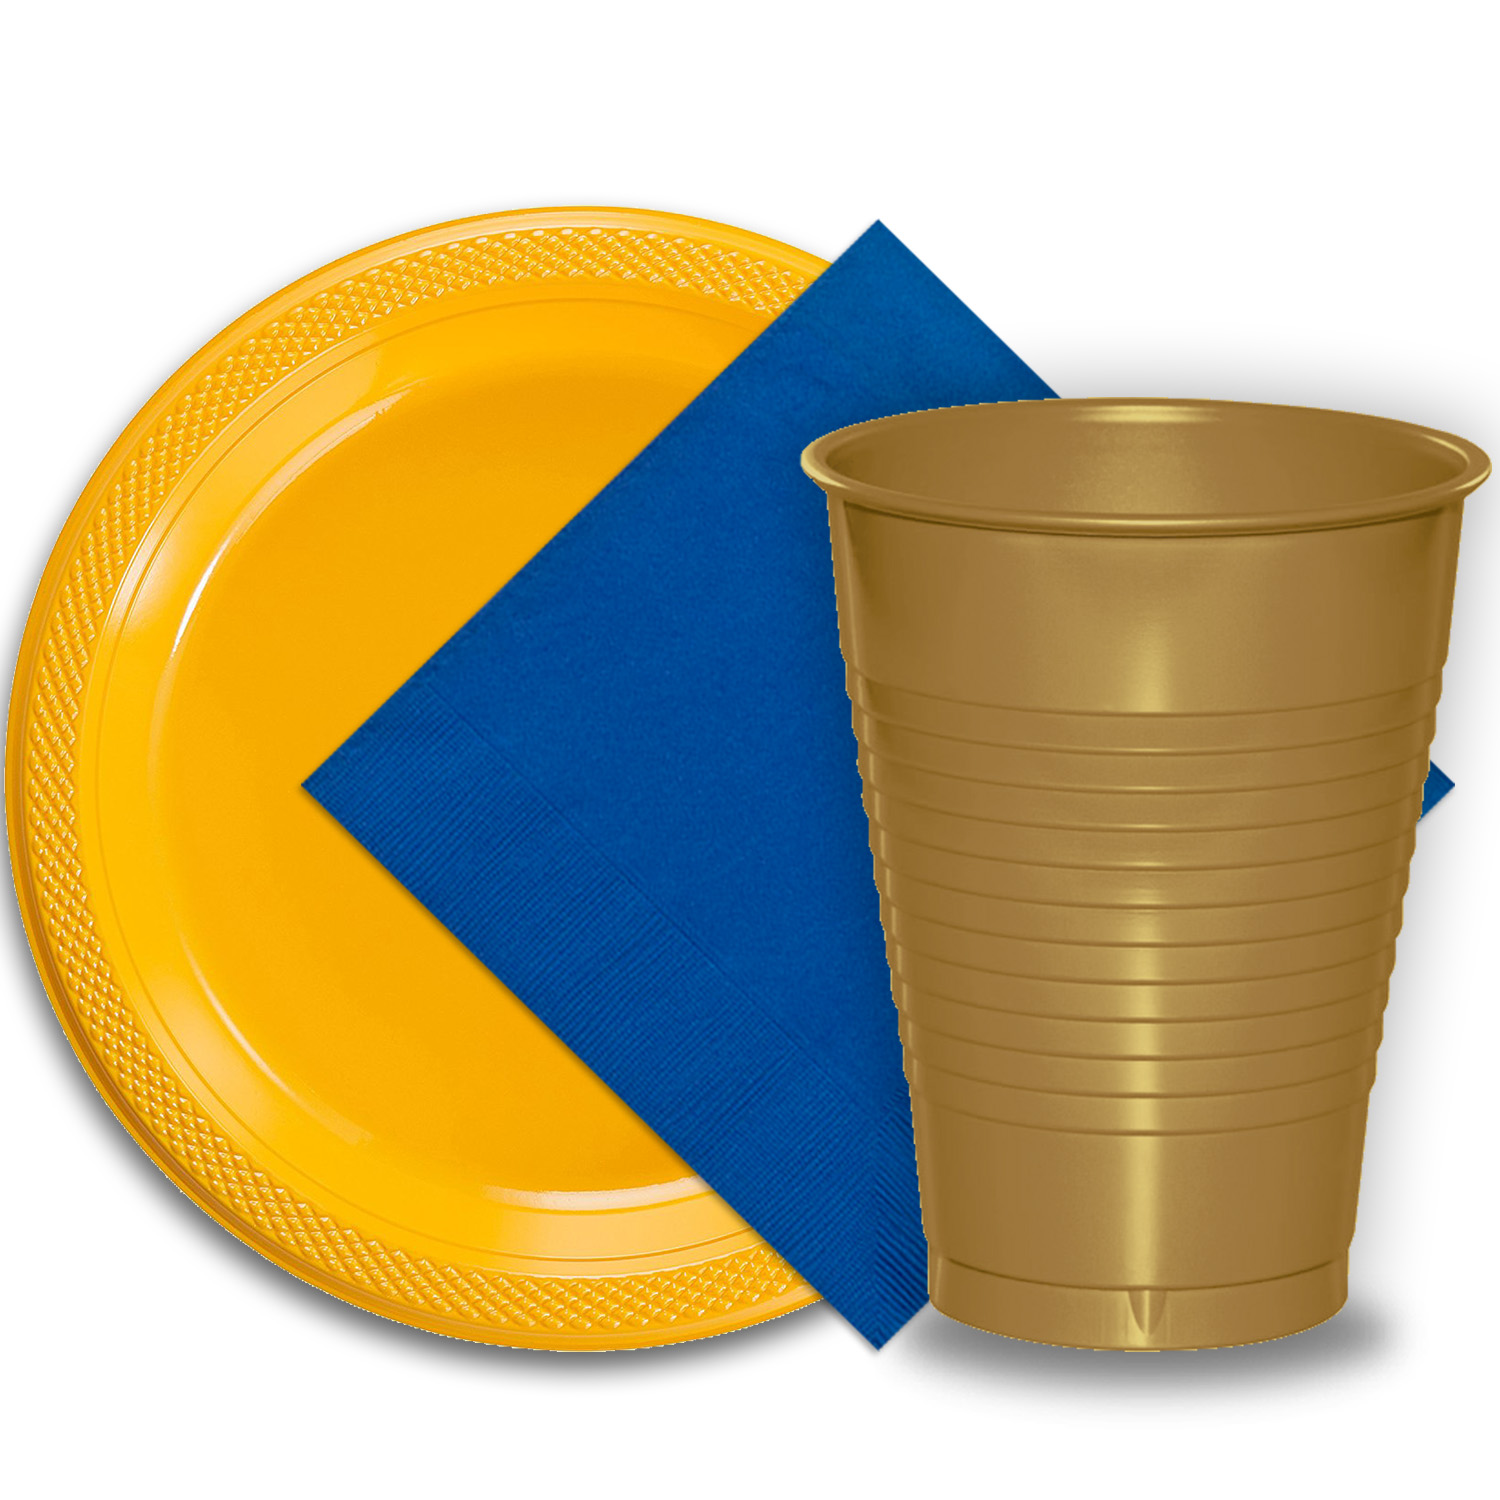 "50 Yellow Plastic Plates (9""), 50 Gold Plastic Cups (12 oz.), and 50 Dark Blue Paper Napkins, Dazzelling Colored Disposable Party Supplies Tableware Set for Fifty Guests."